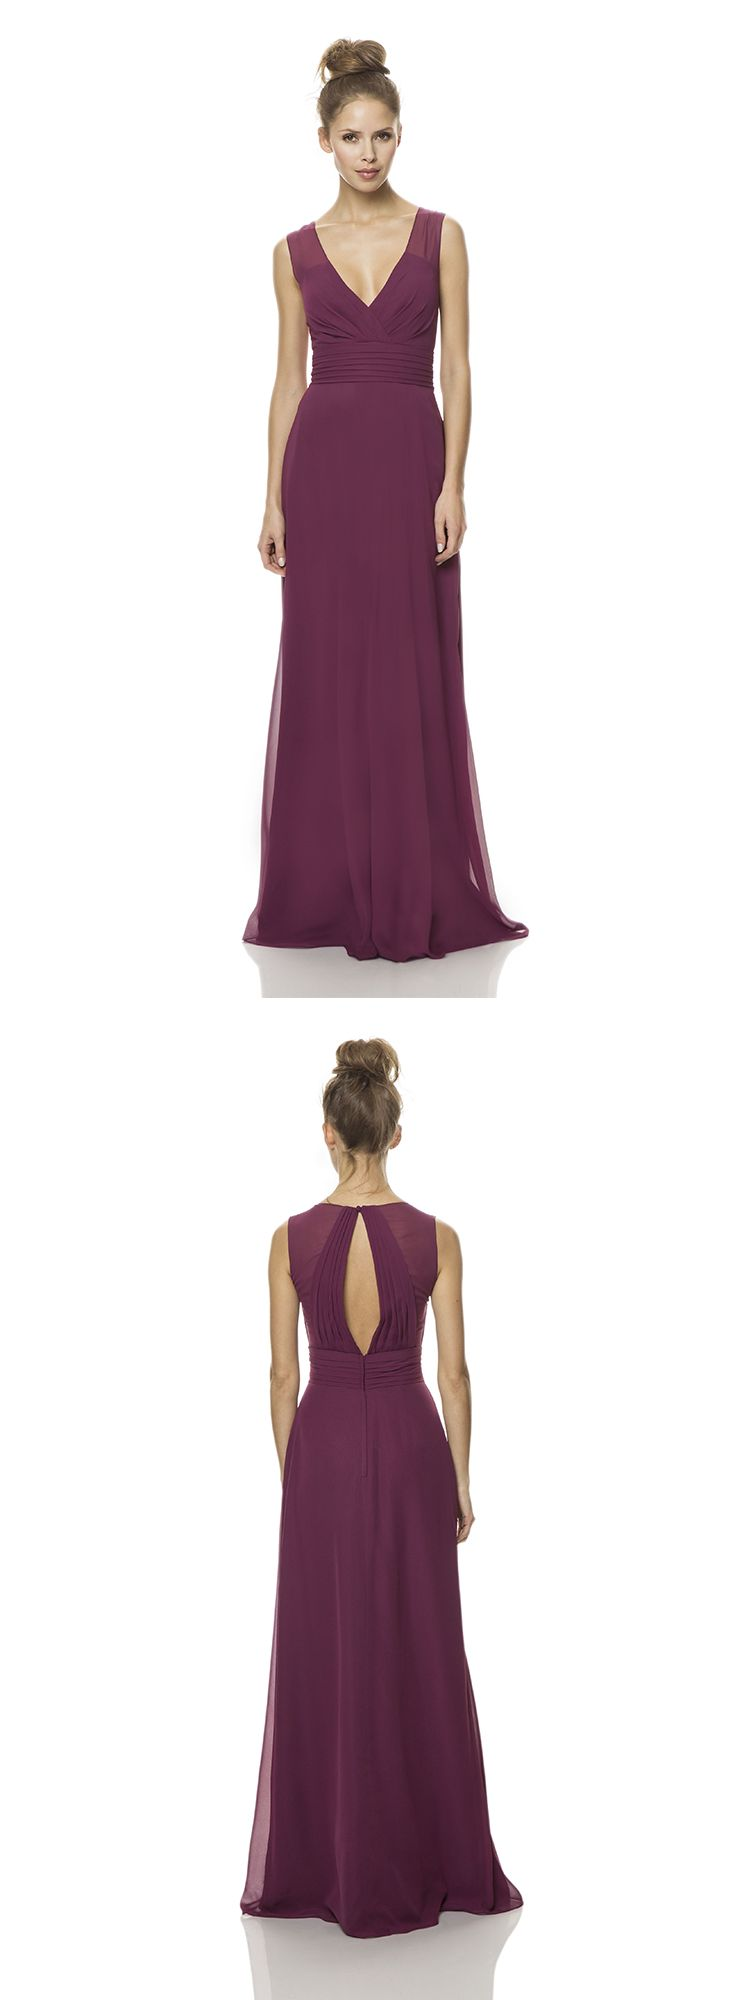 A stunning long chiffon bridesmaid dress with classic v-neckline.